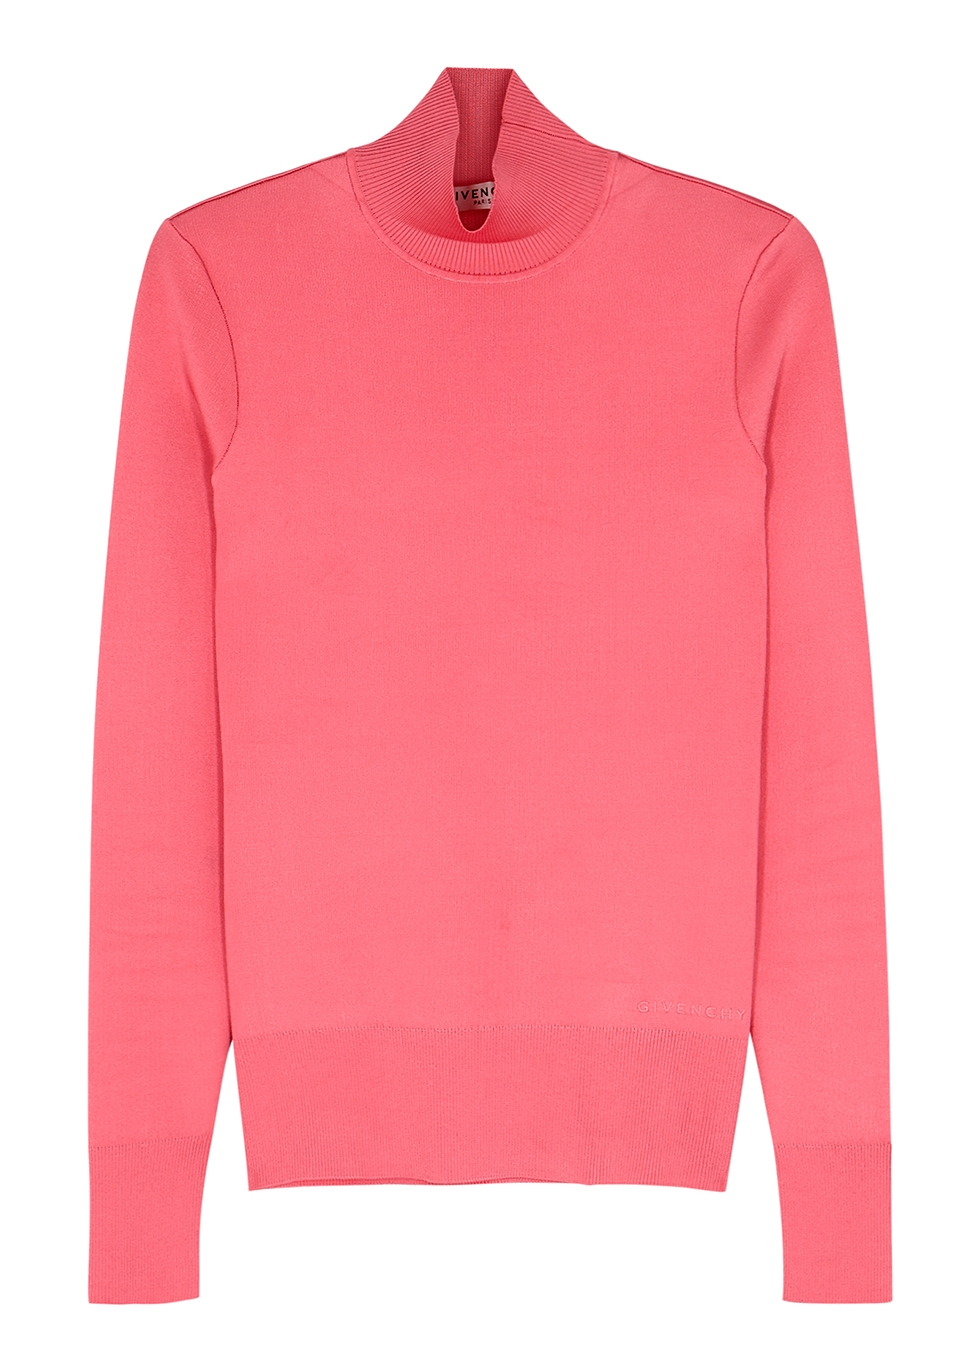 Pink high-neck stretch-knit top